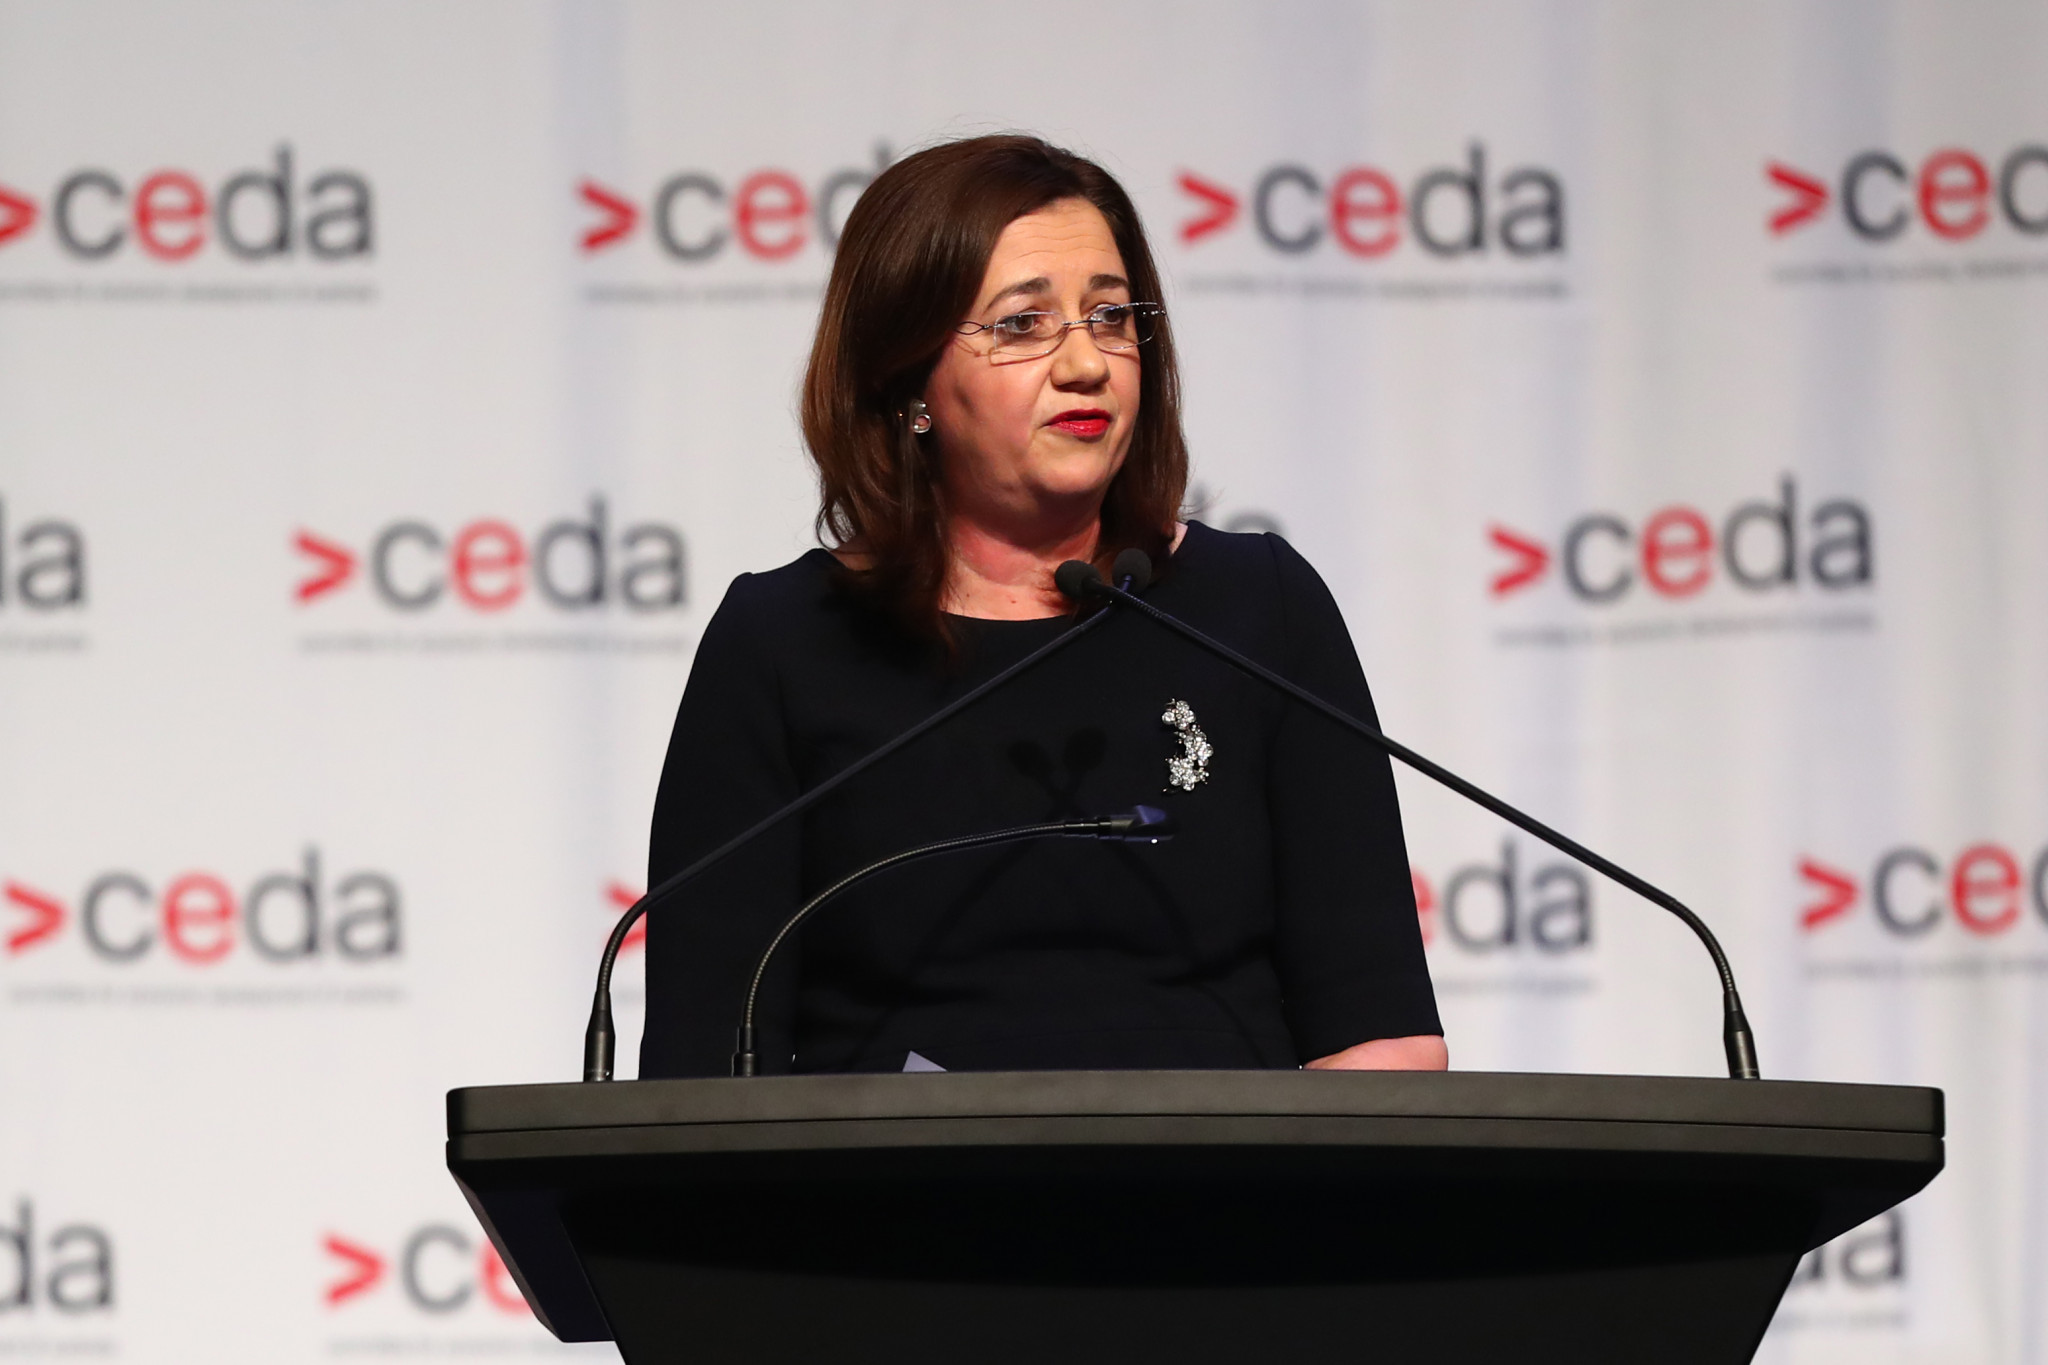 Queensland Premier Annastacia Palaszczuk confirmed the Olympic and Paralympic bid last week ©Getty Images